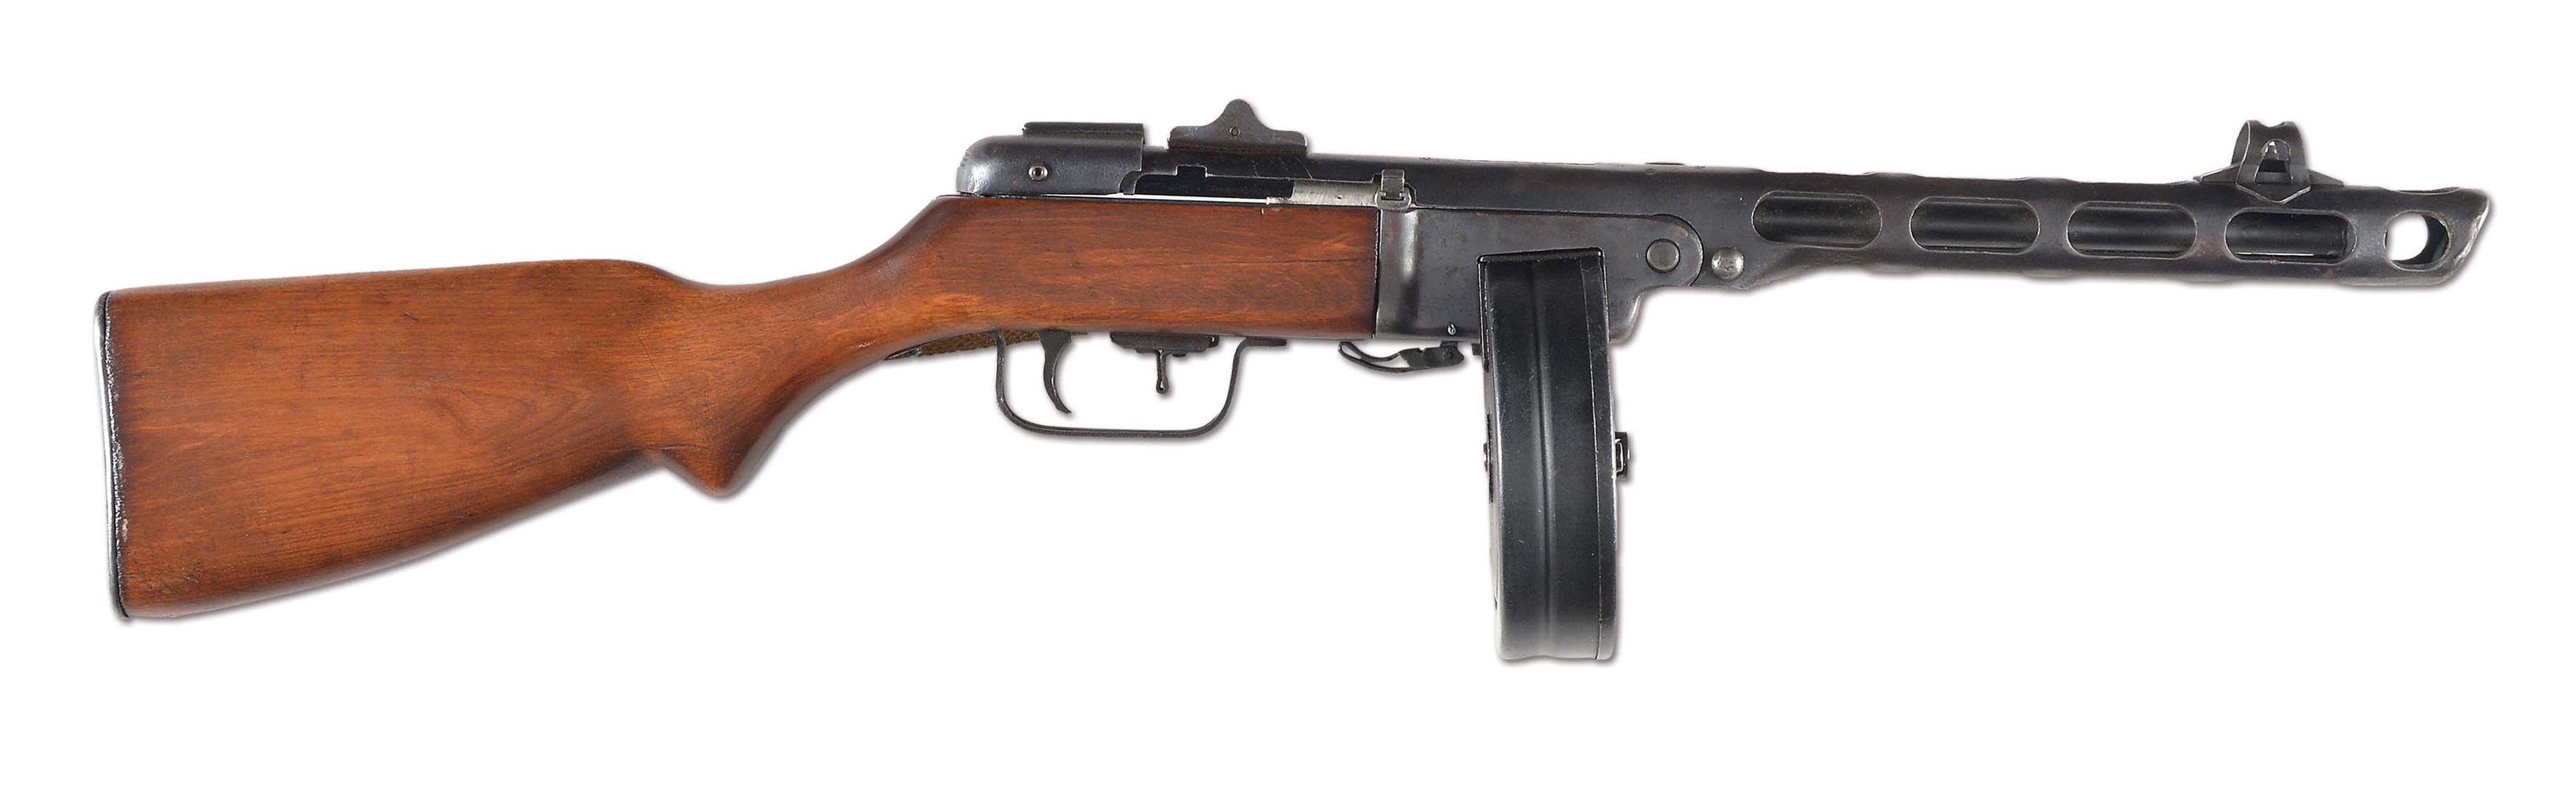 (N) ABSOLUTELY STUNNING CONDITION ORIGINAL AMNESTY REGISTERED RUSSIAN PPSH-41 MACHINE GUN WITH COPY OF ORIGINAL AMNESTY REGISTRATION FORM (CURIO AND RELIC).